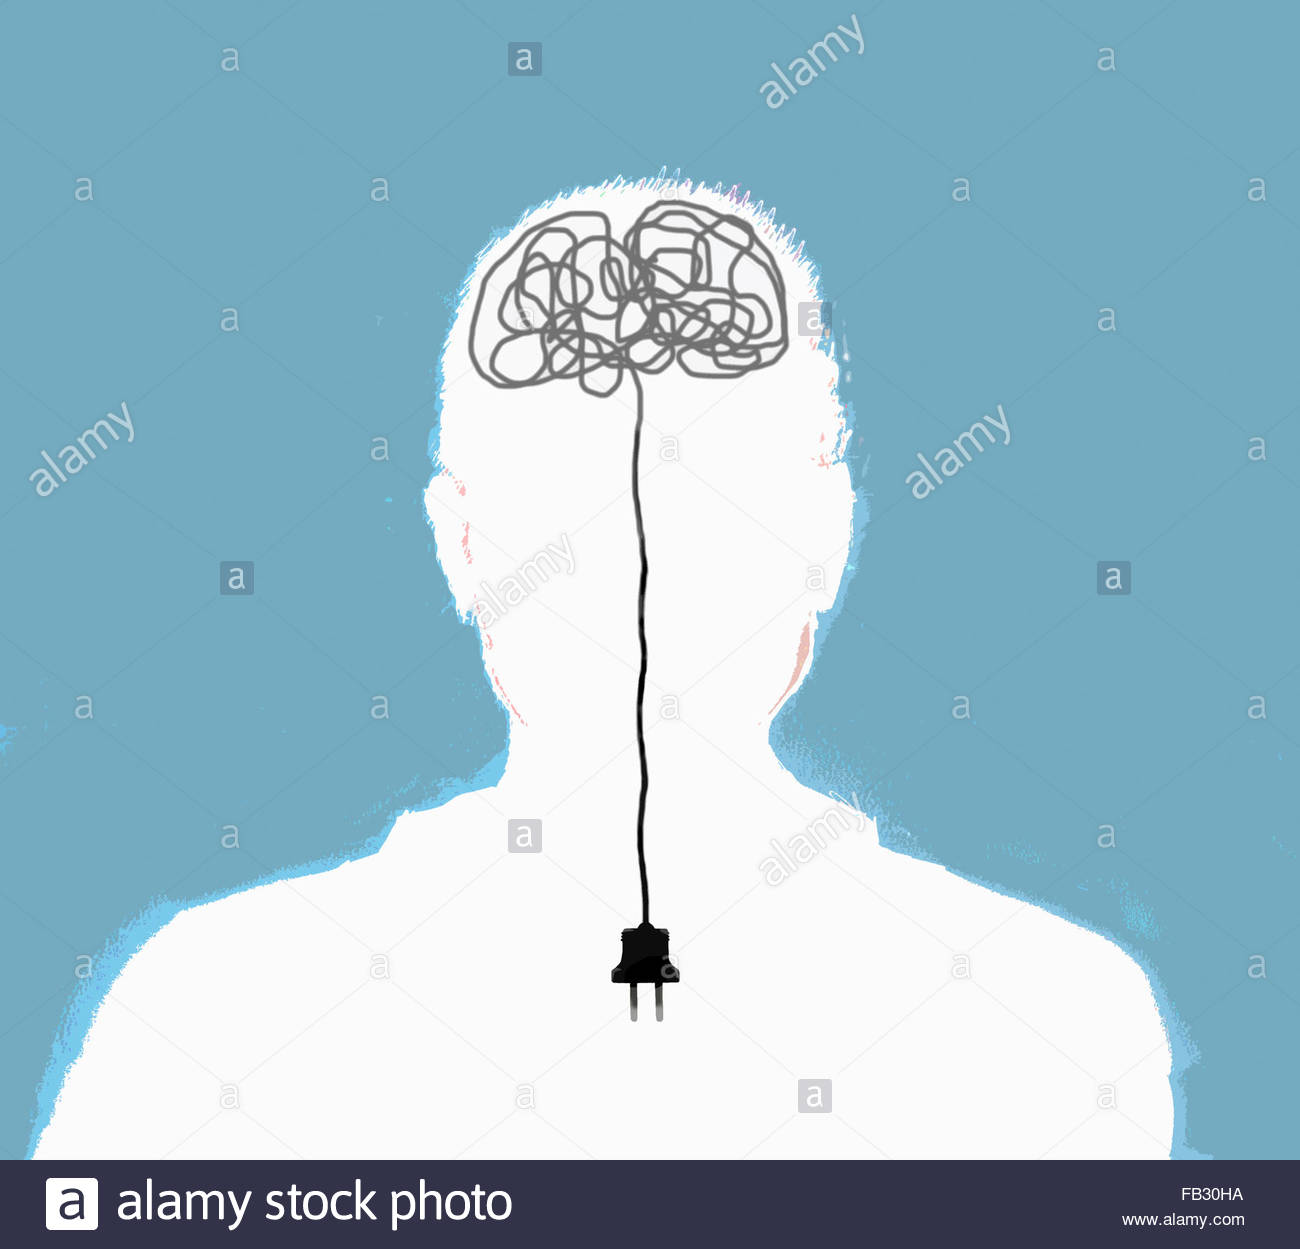 Man with unplugged tangled electric wires in brain Stock Photo ...